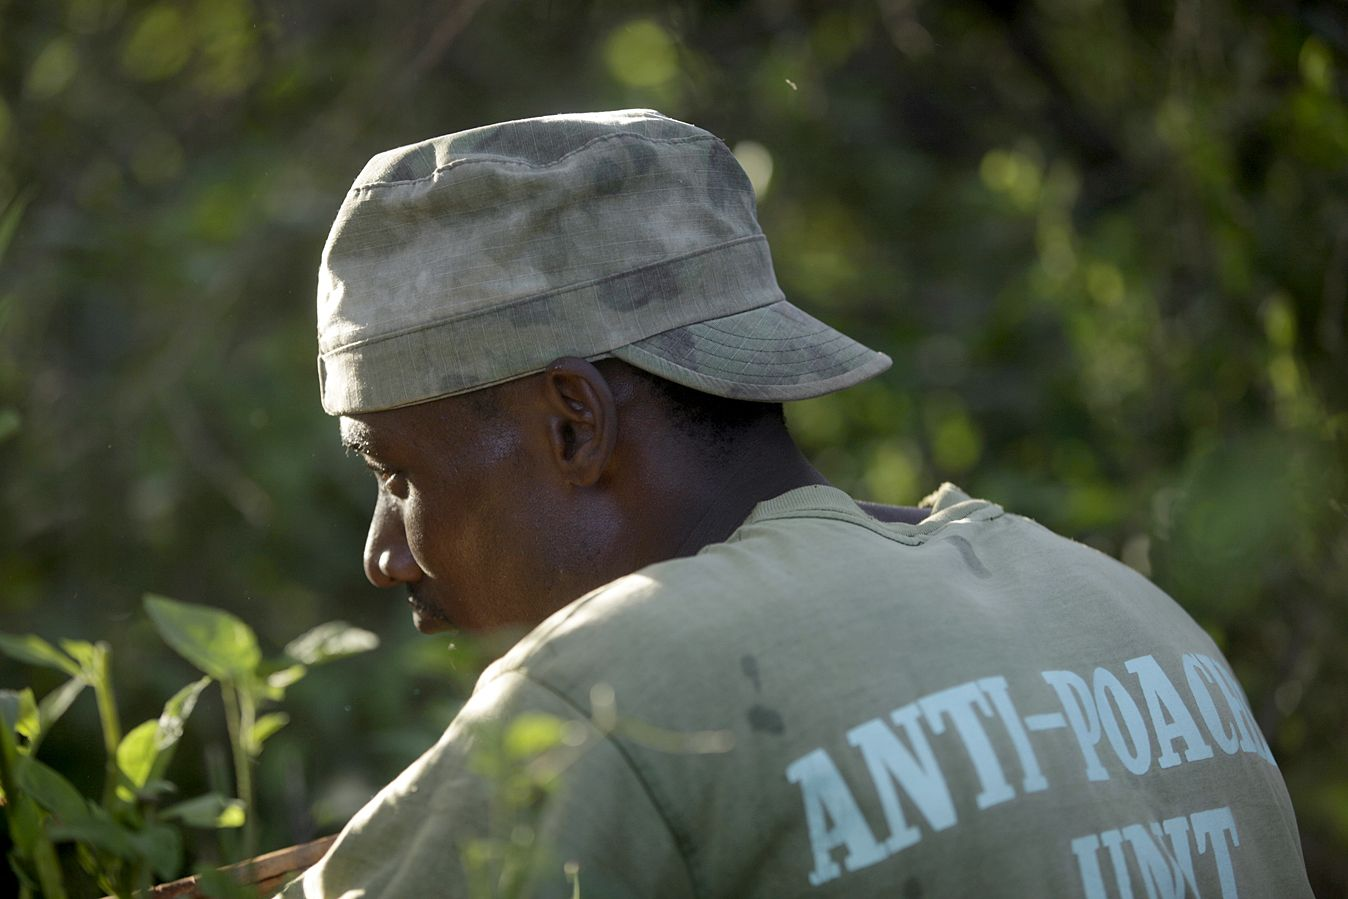 APW's highly-trained anti-poaching unit conducts regular patrols to fight the illegal killing of vulnerable wildlife species.